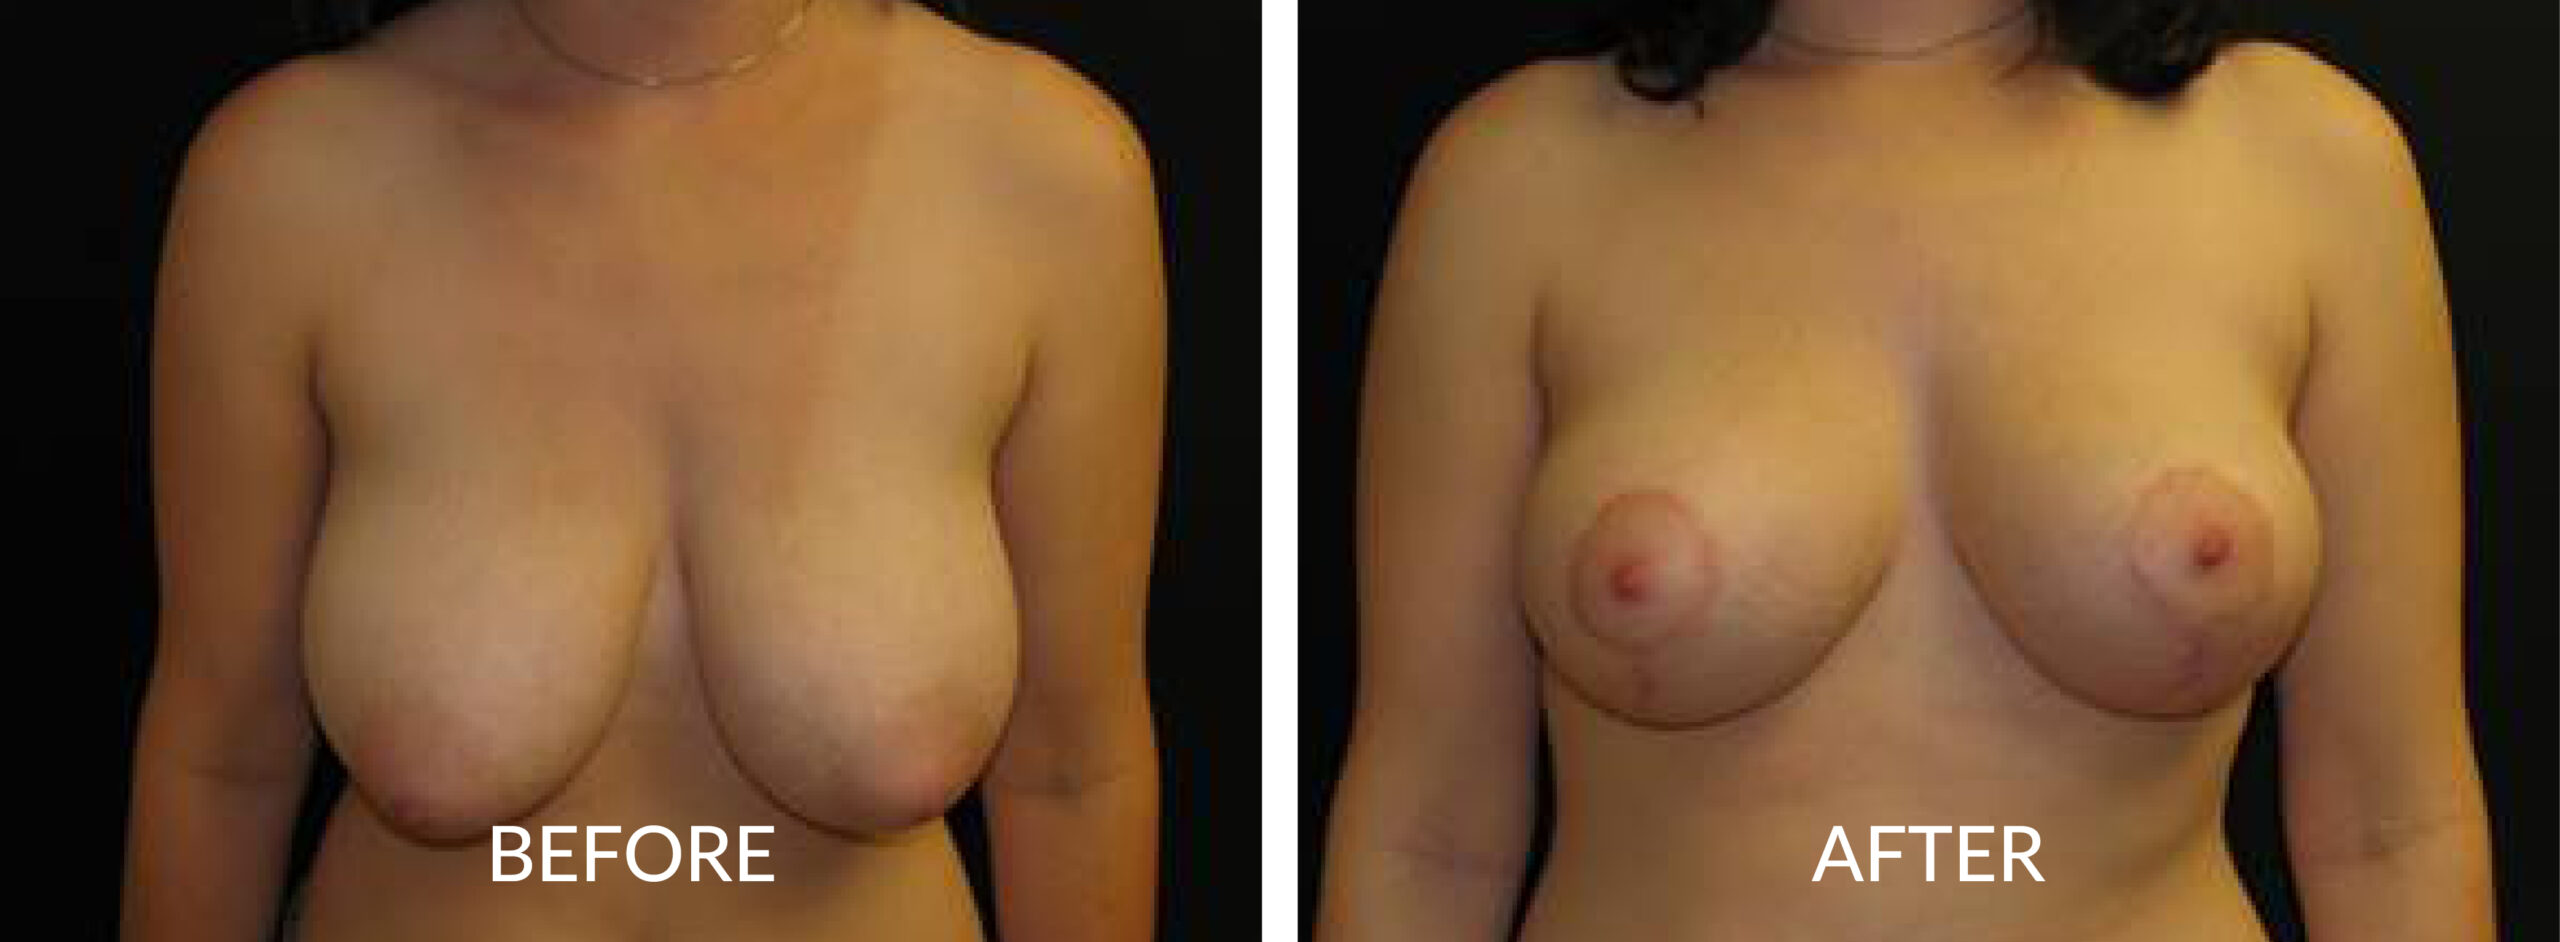 Before & After Breast Mastopexy & Reduction